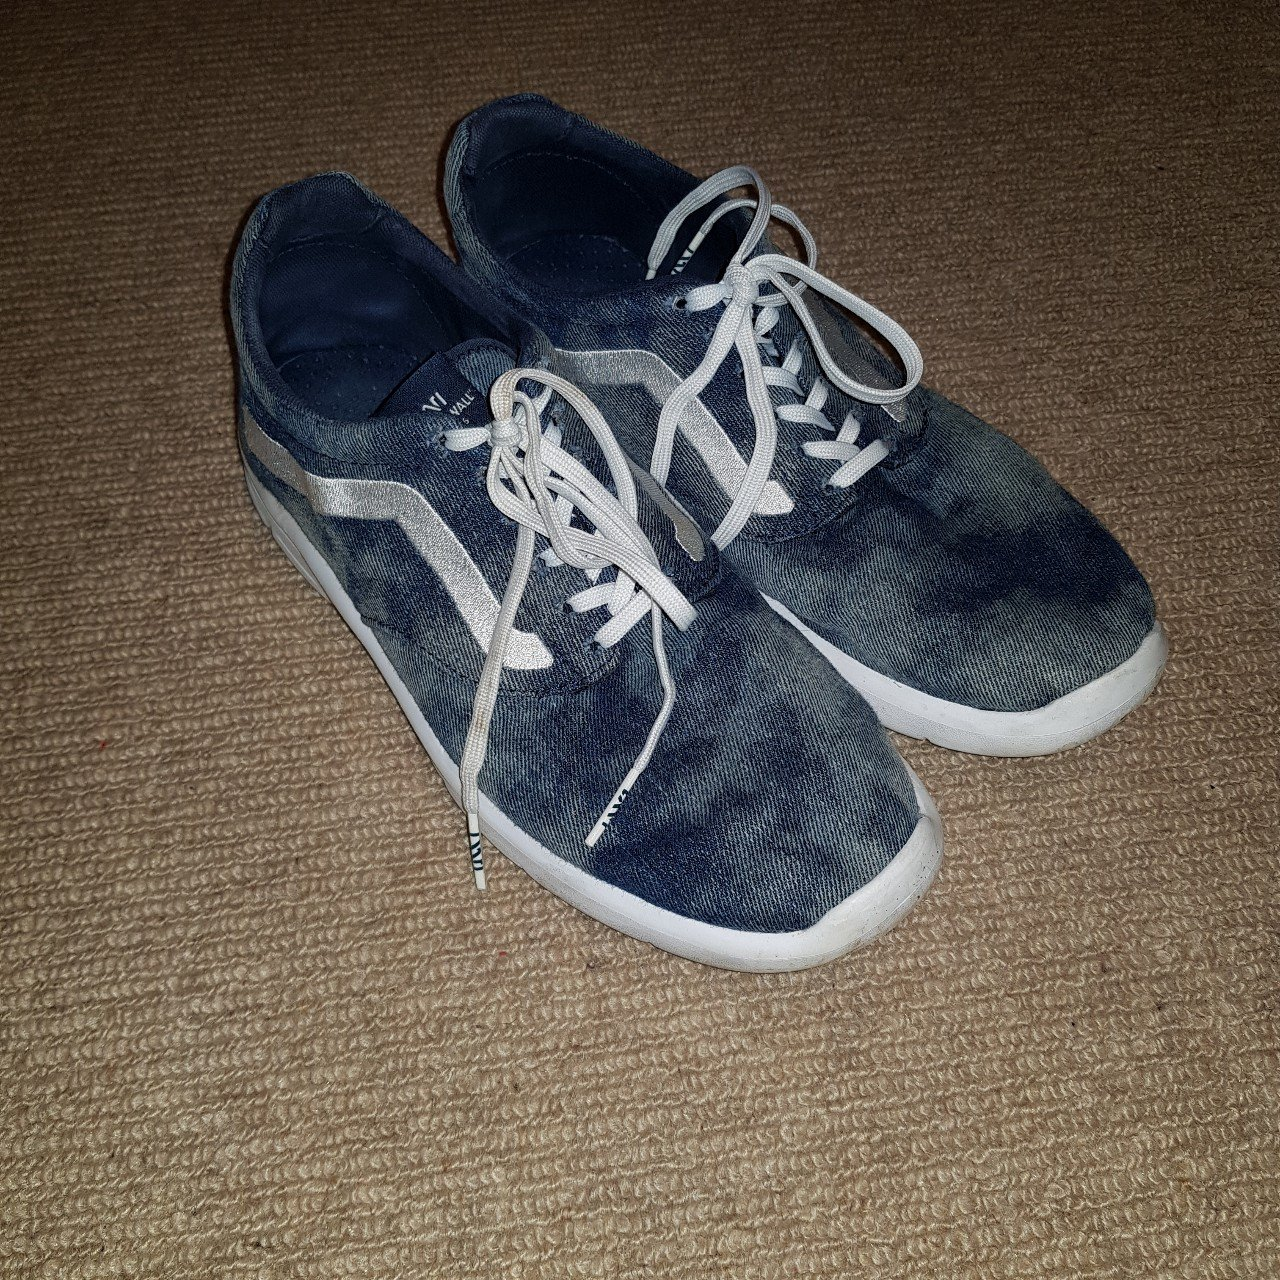 6722ba5c45291f Rare pair of vans shoes with marble effect them in good of depop jpg  1280x1280 Rare